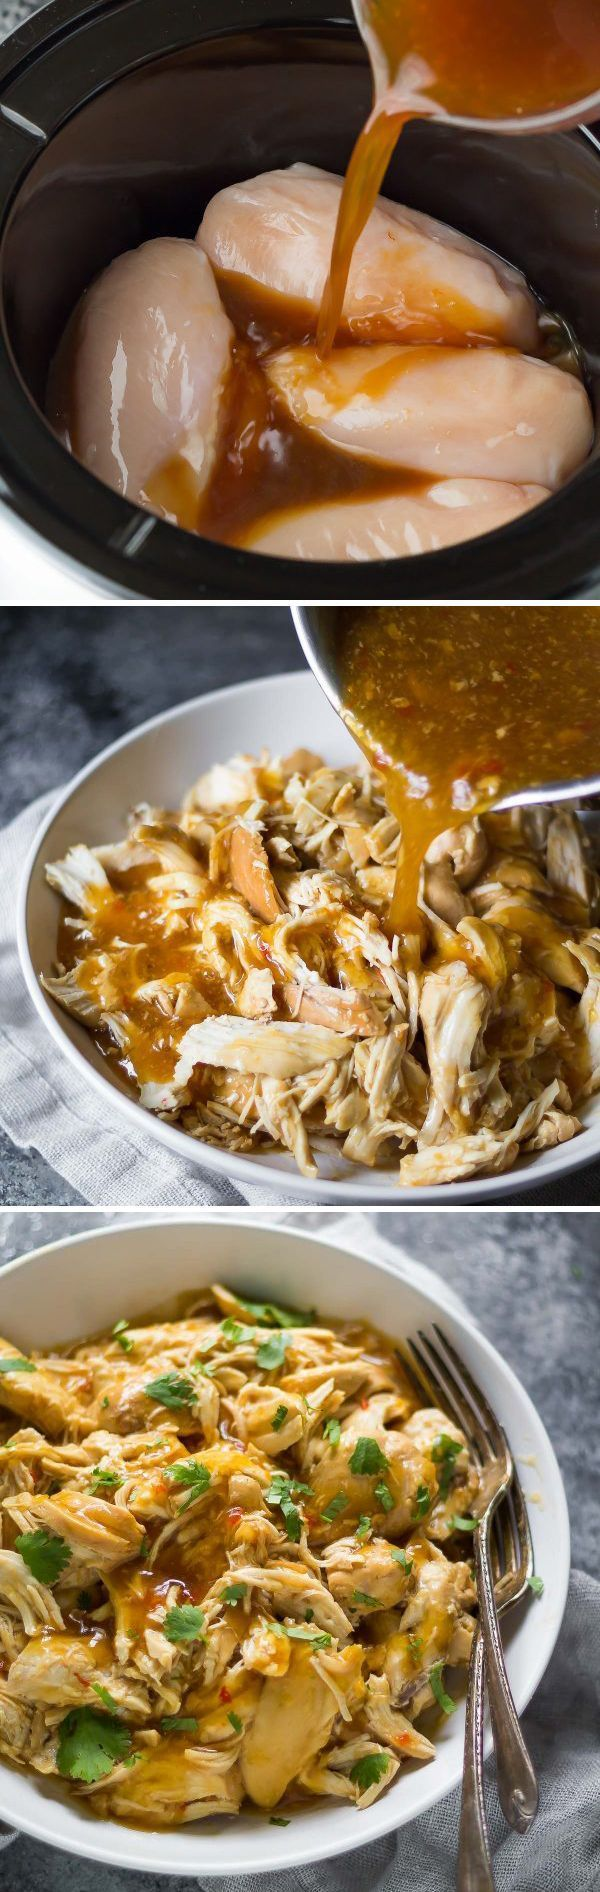 This slow cooker sweet chili chicken requires only 7 ingredients! Plus 3 recipes to use your leftovers.